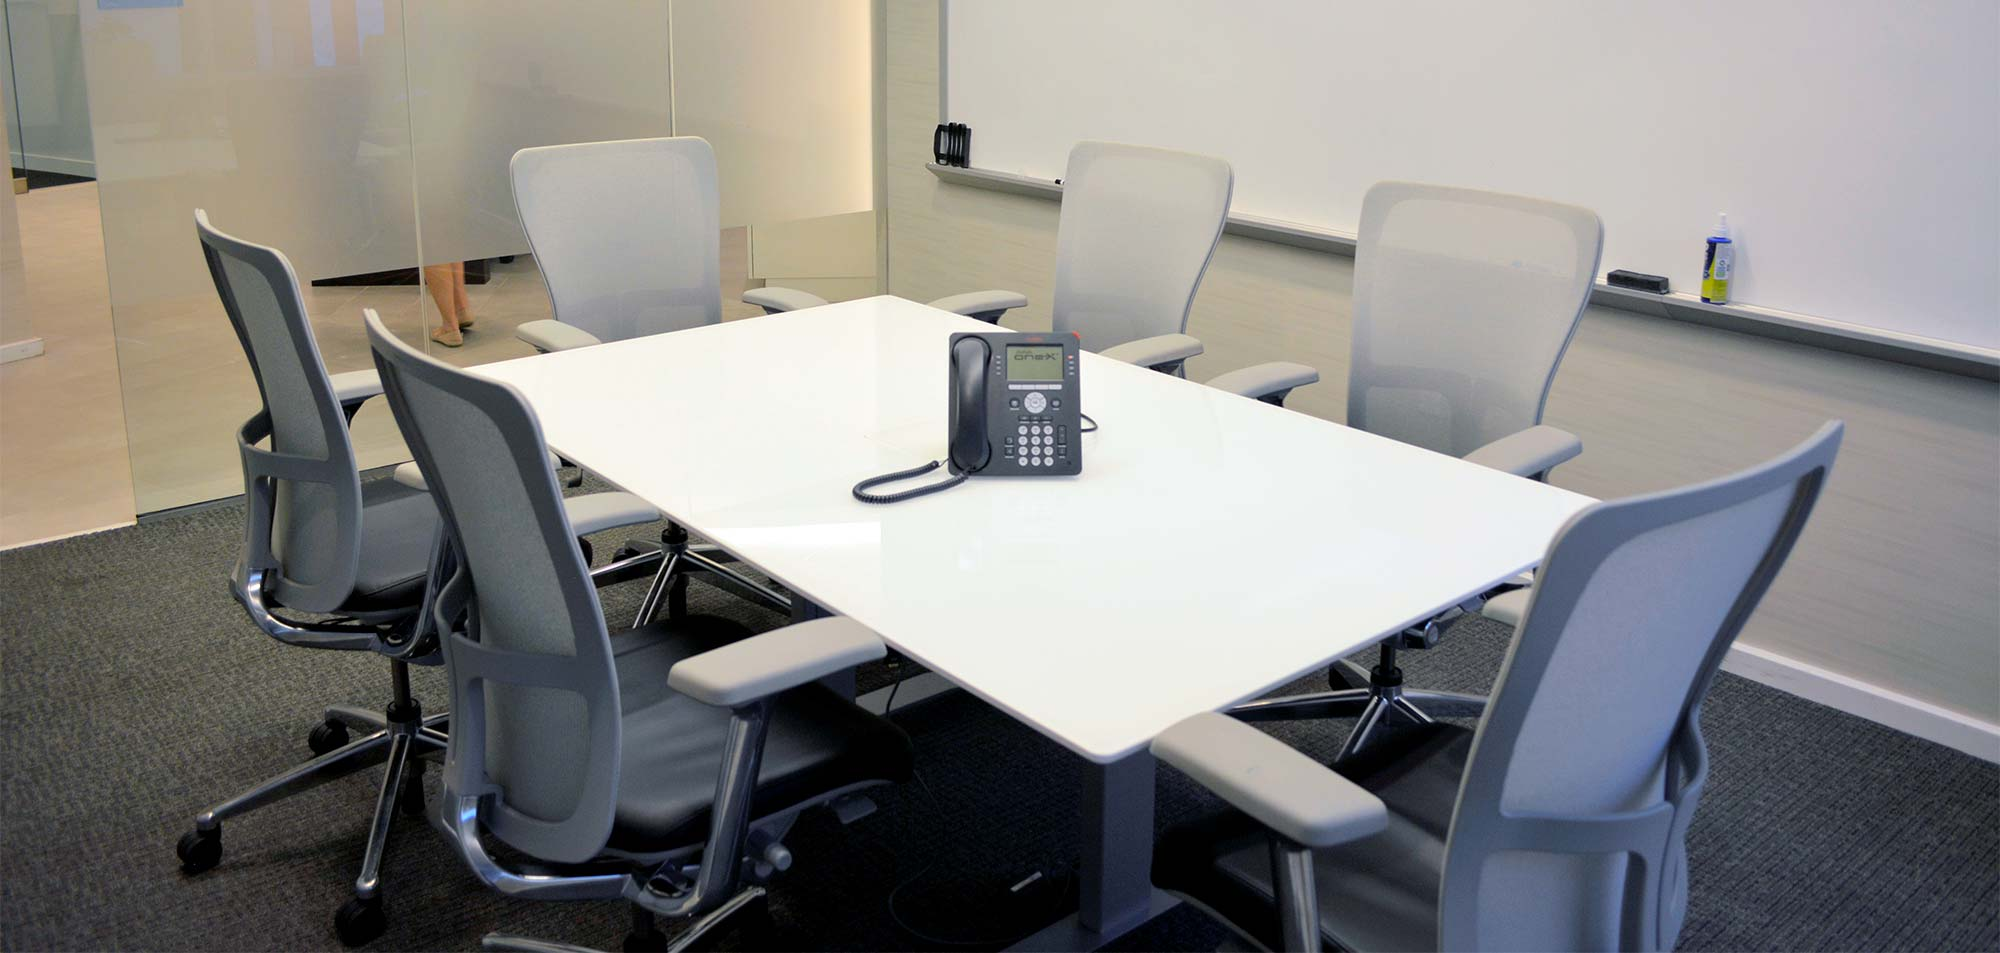 chevy-chase-6th-floor-meeting-room